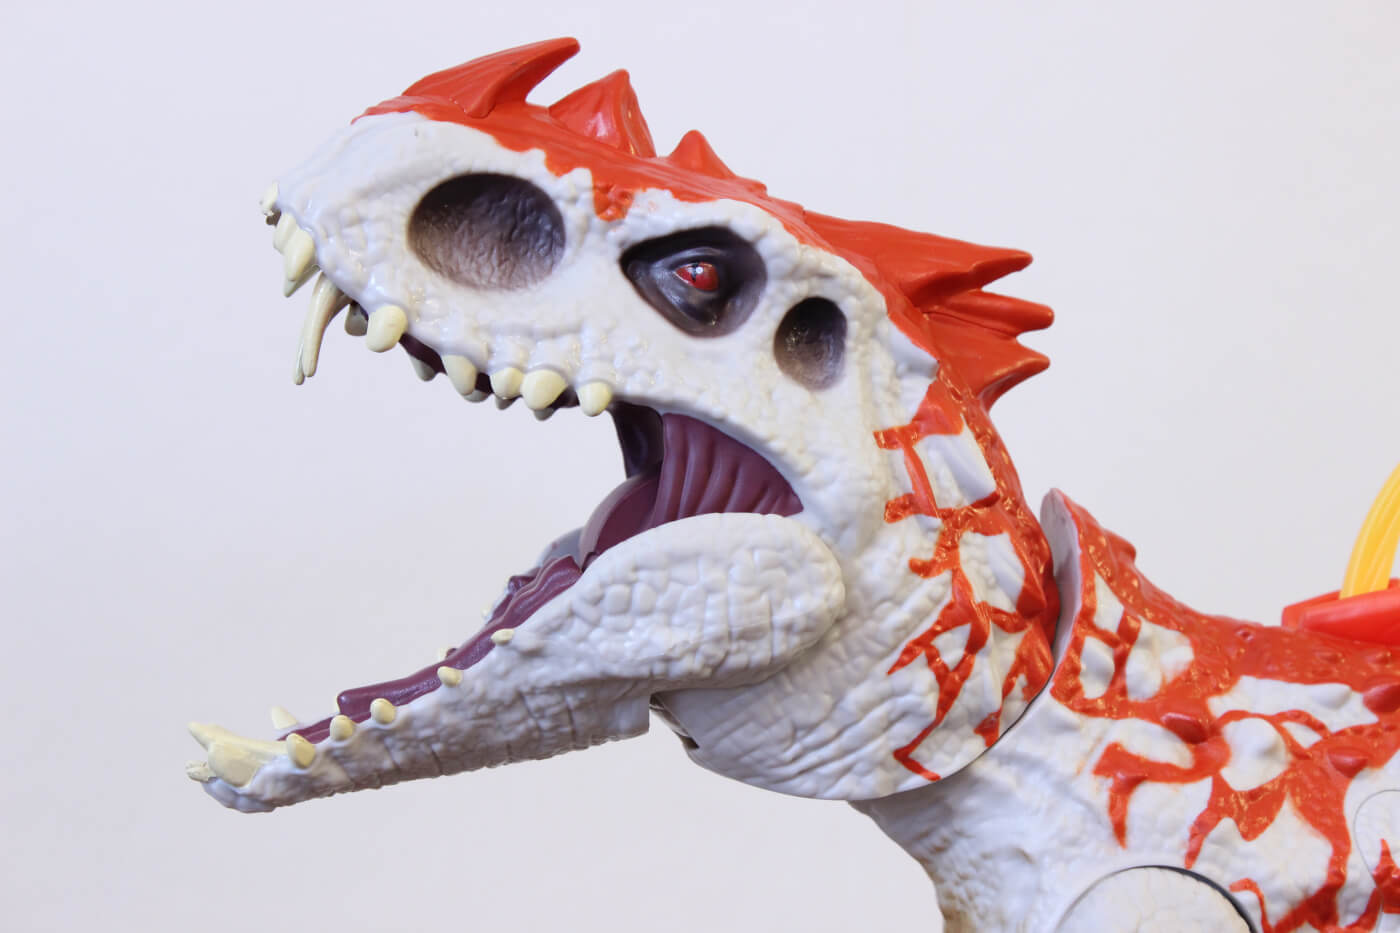 Review: Hasbro Jurassic World 'Hybrid Rampage' Indominus Rex